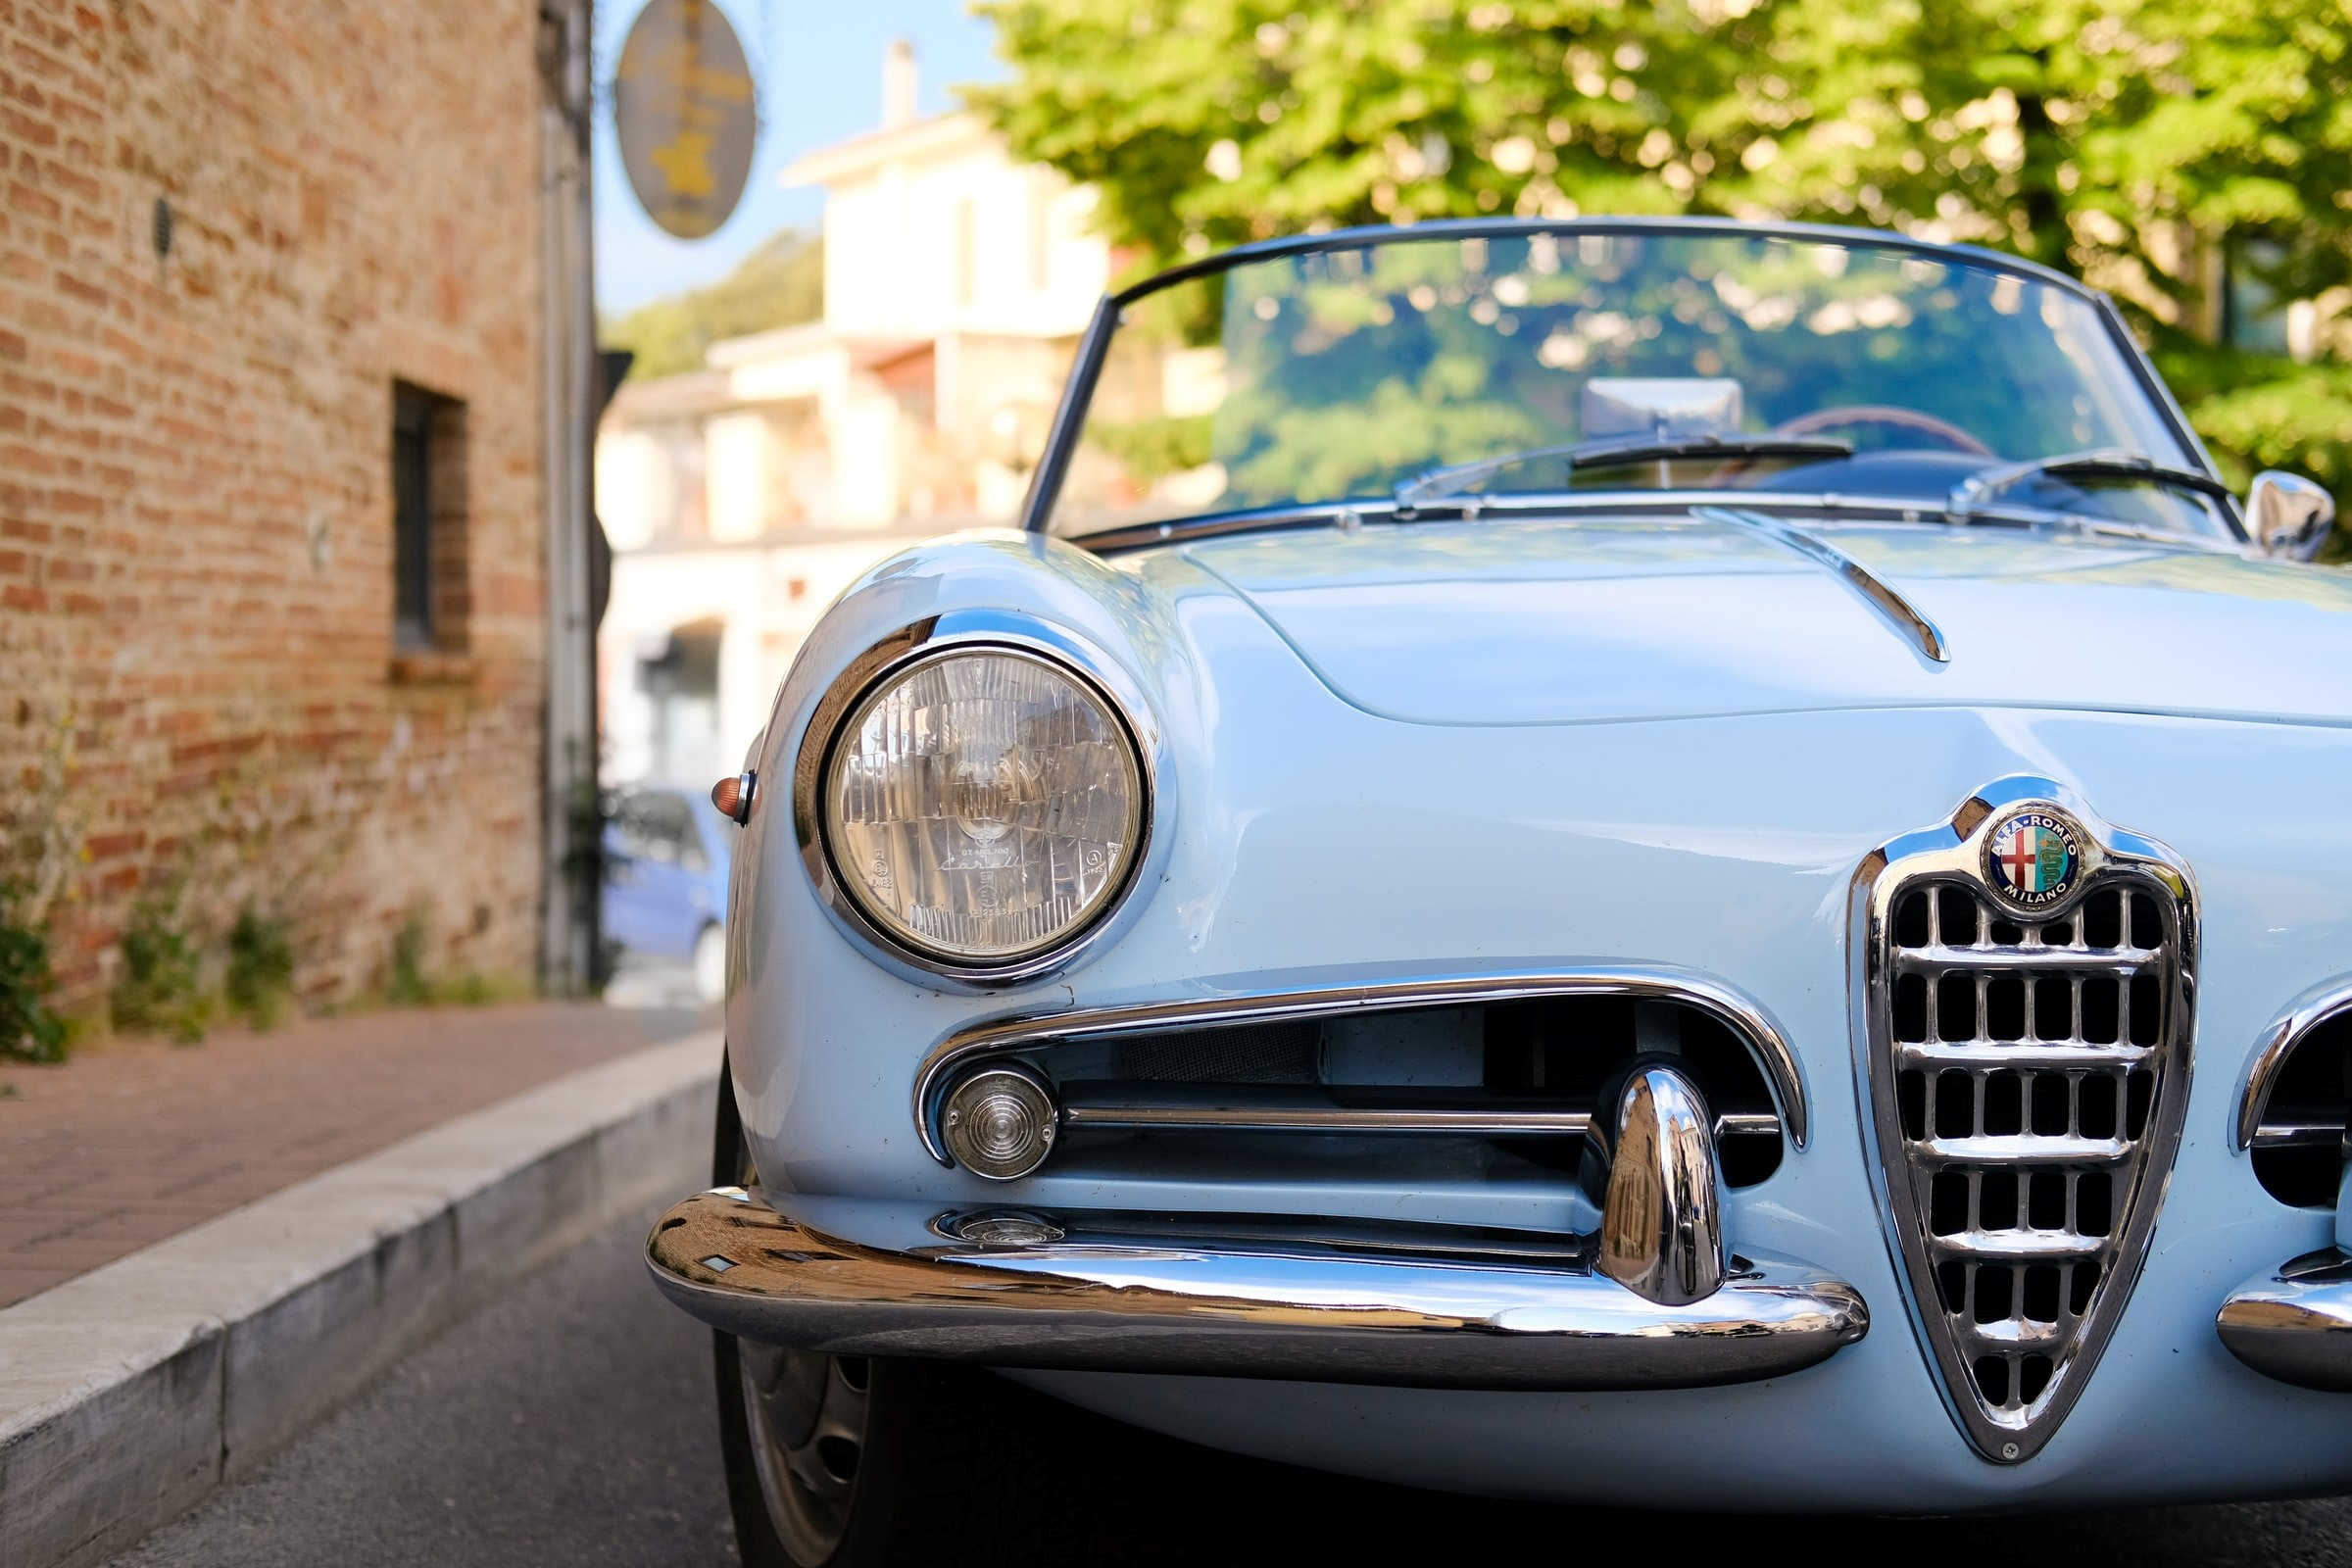 The Easiest Way to Find Car Hire Services in Milan